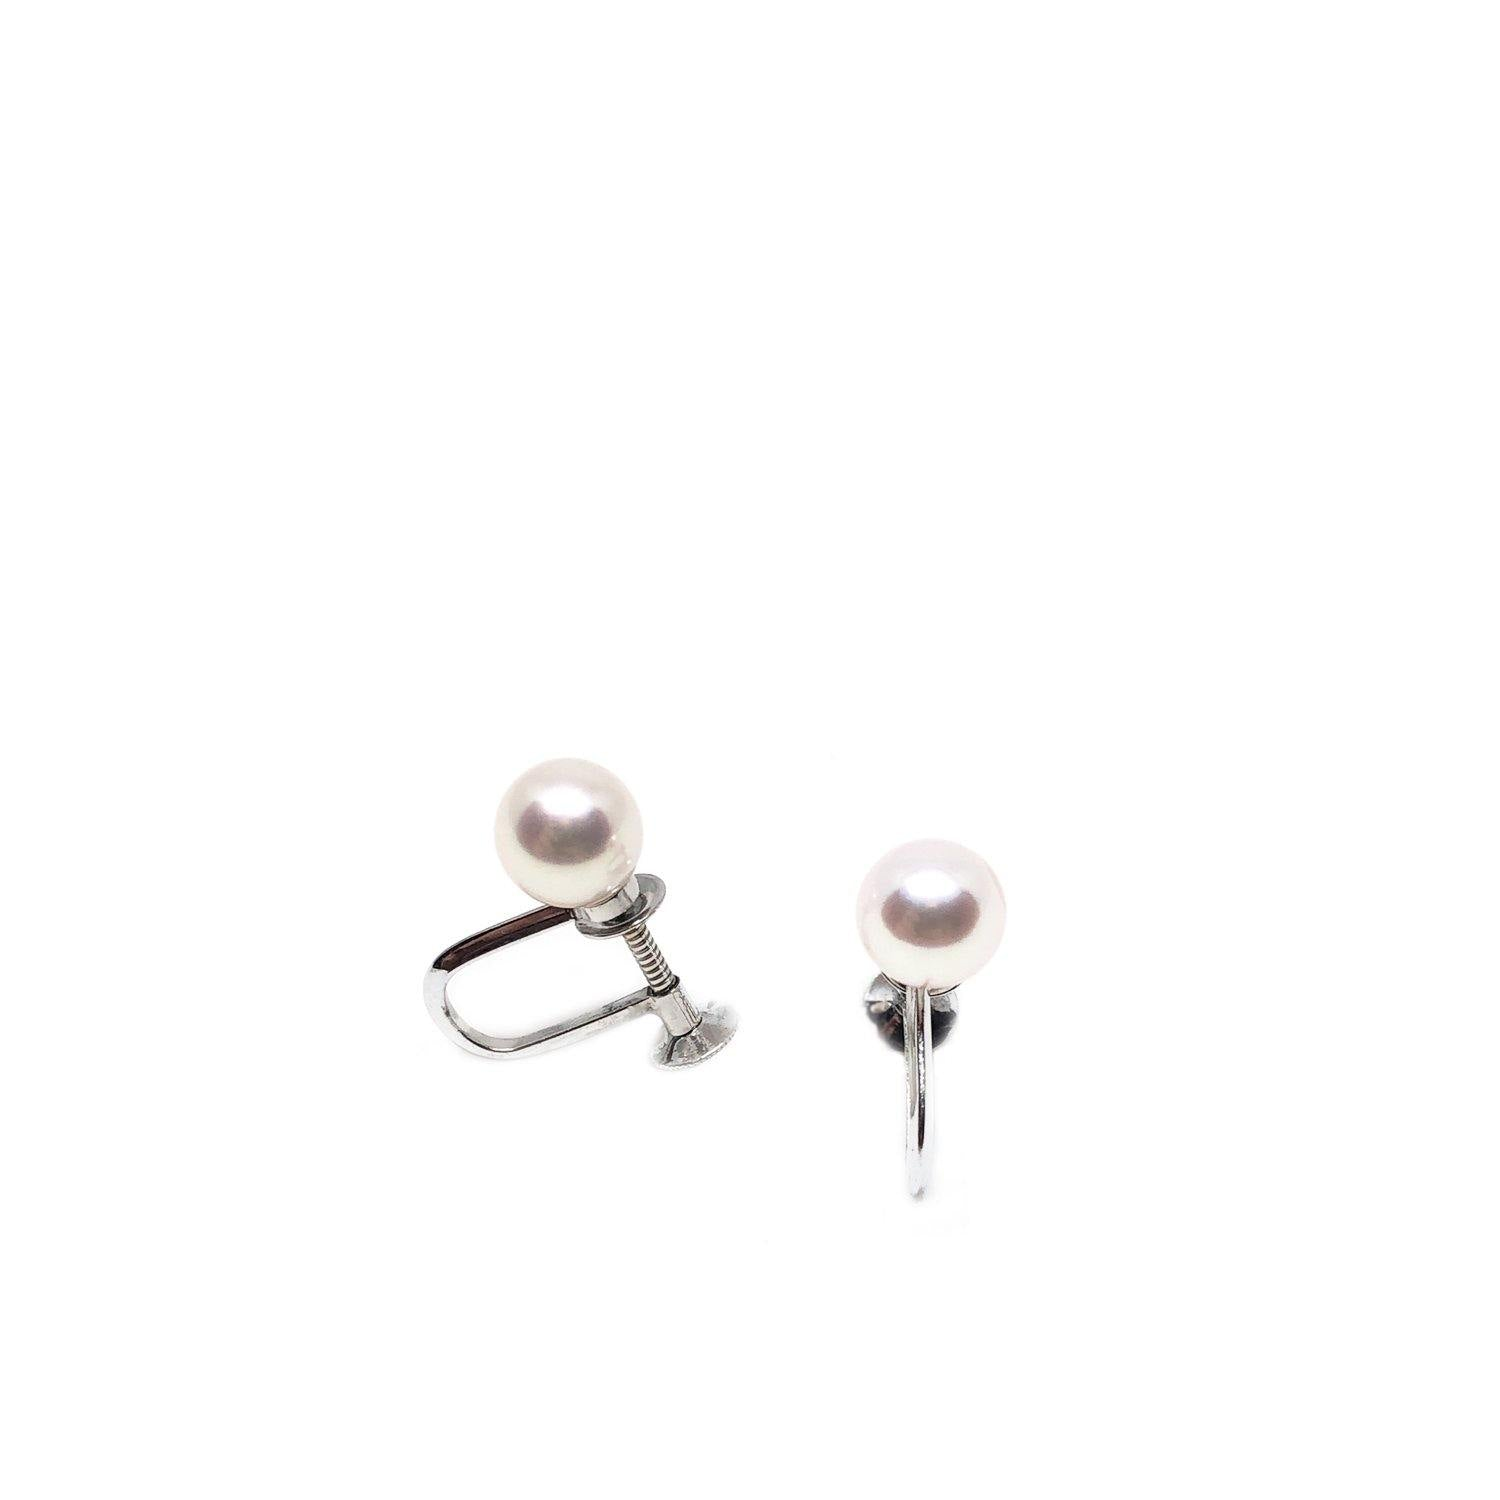 Mikimoto Solitaire Akoya Saltwater Cultured Pearl Screwback Earrings- Sterling Silver